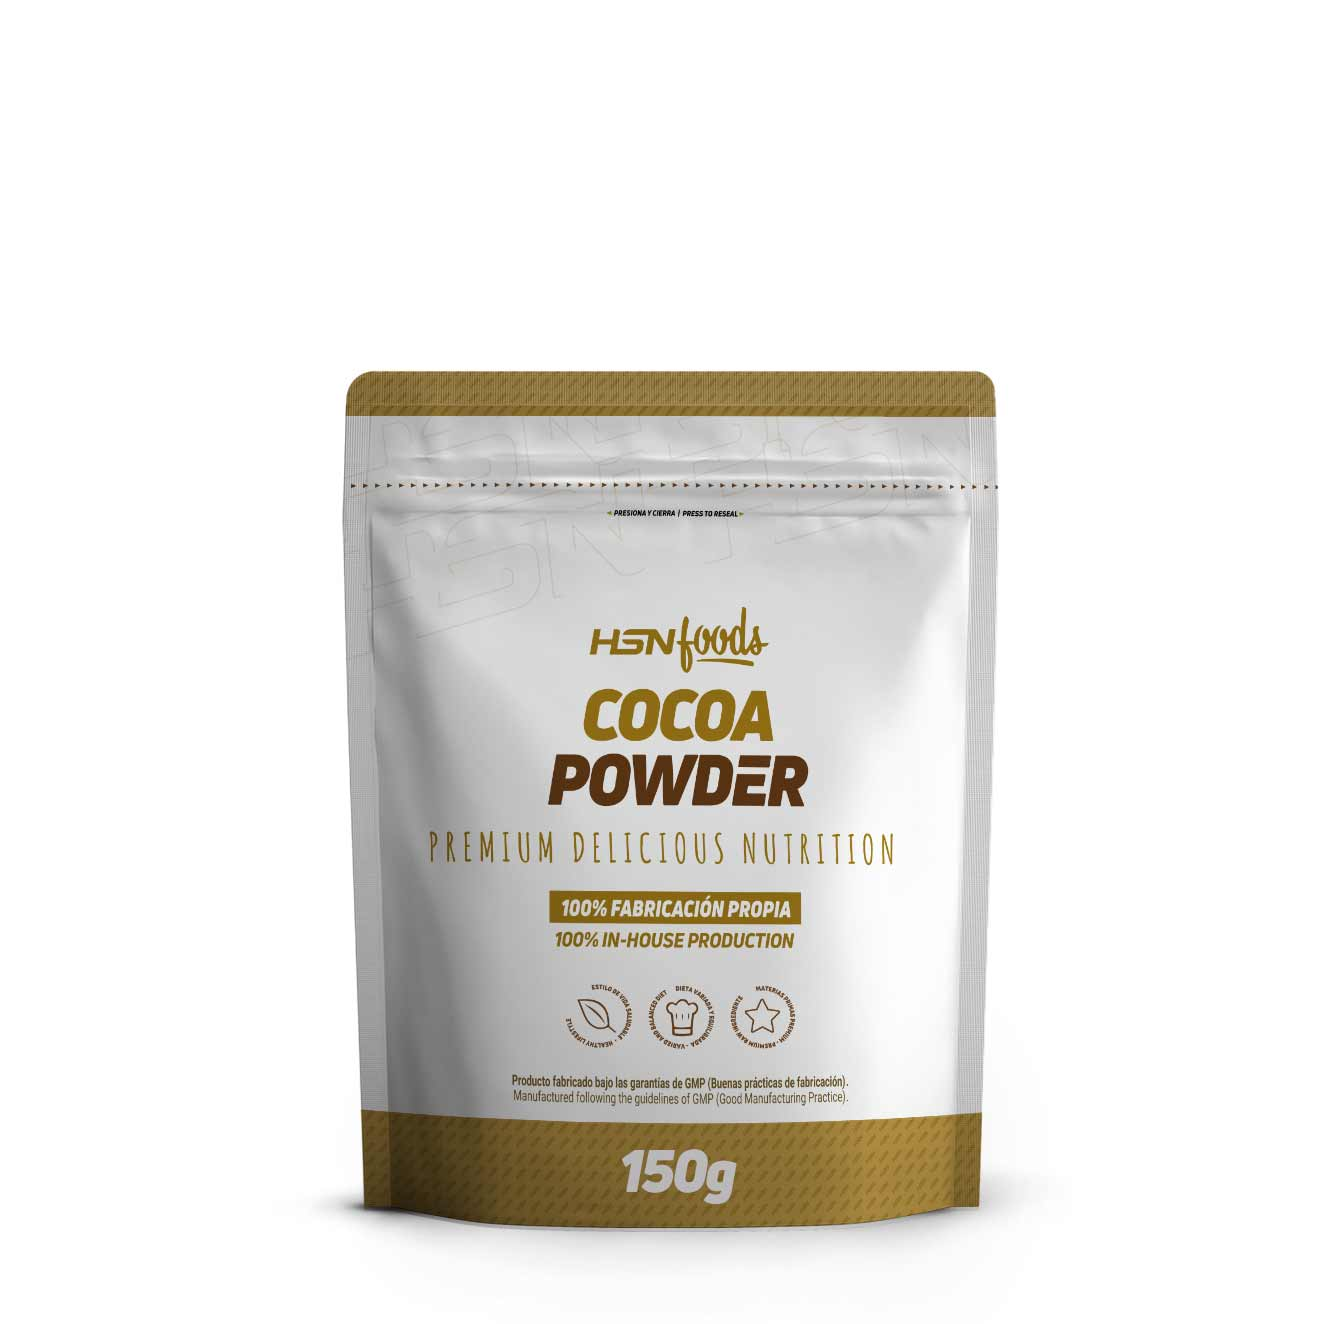 COCOA POWDER 150g